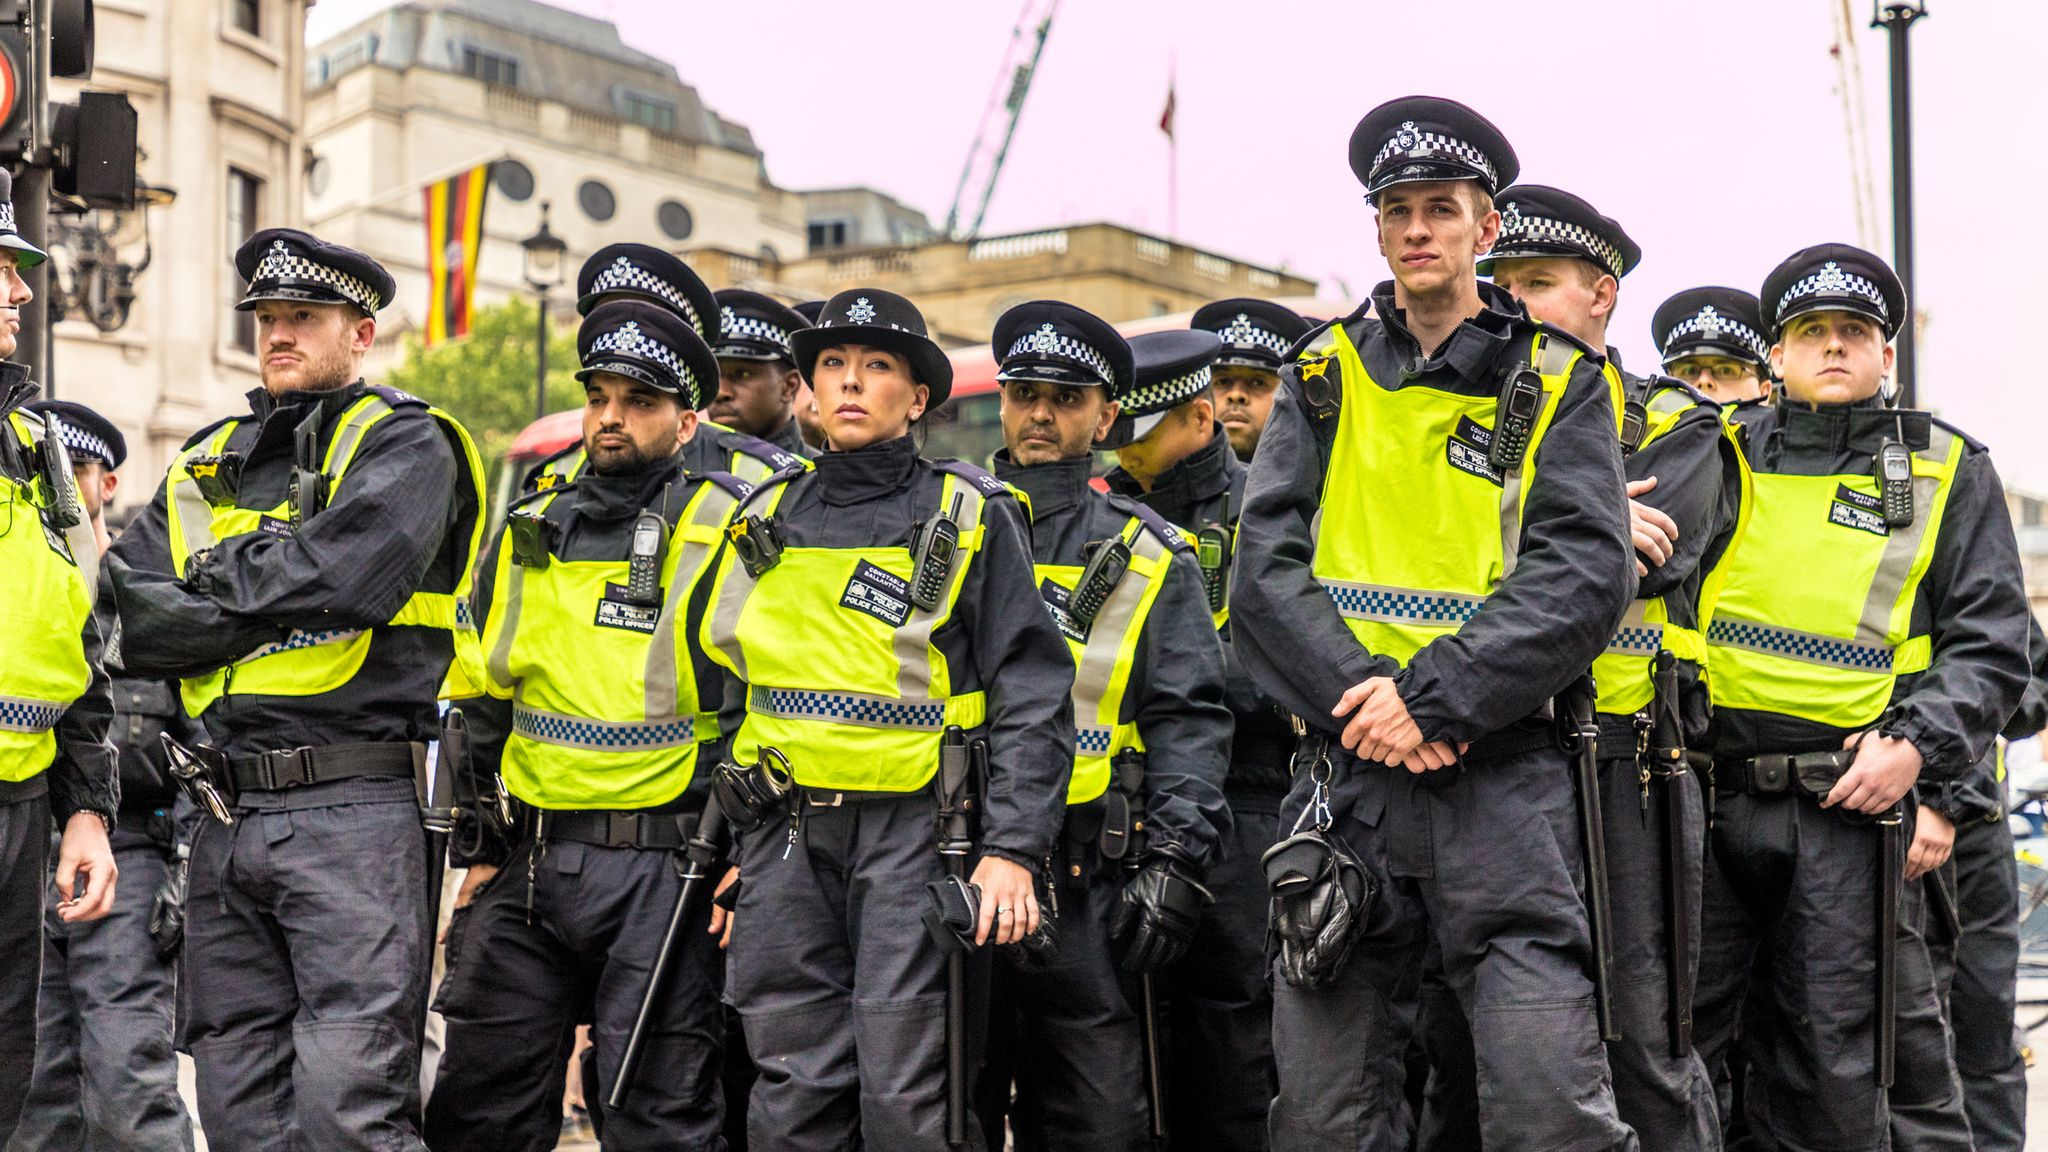 UK Police break their own record after seizing $250 million in cryptocurrencies